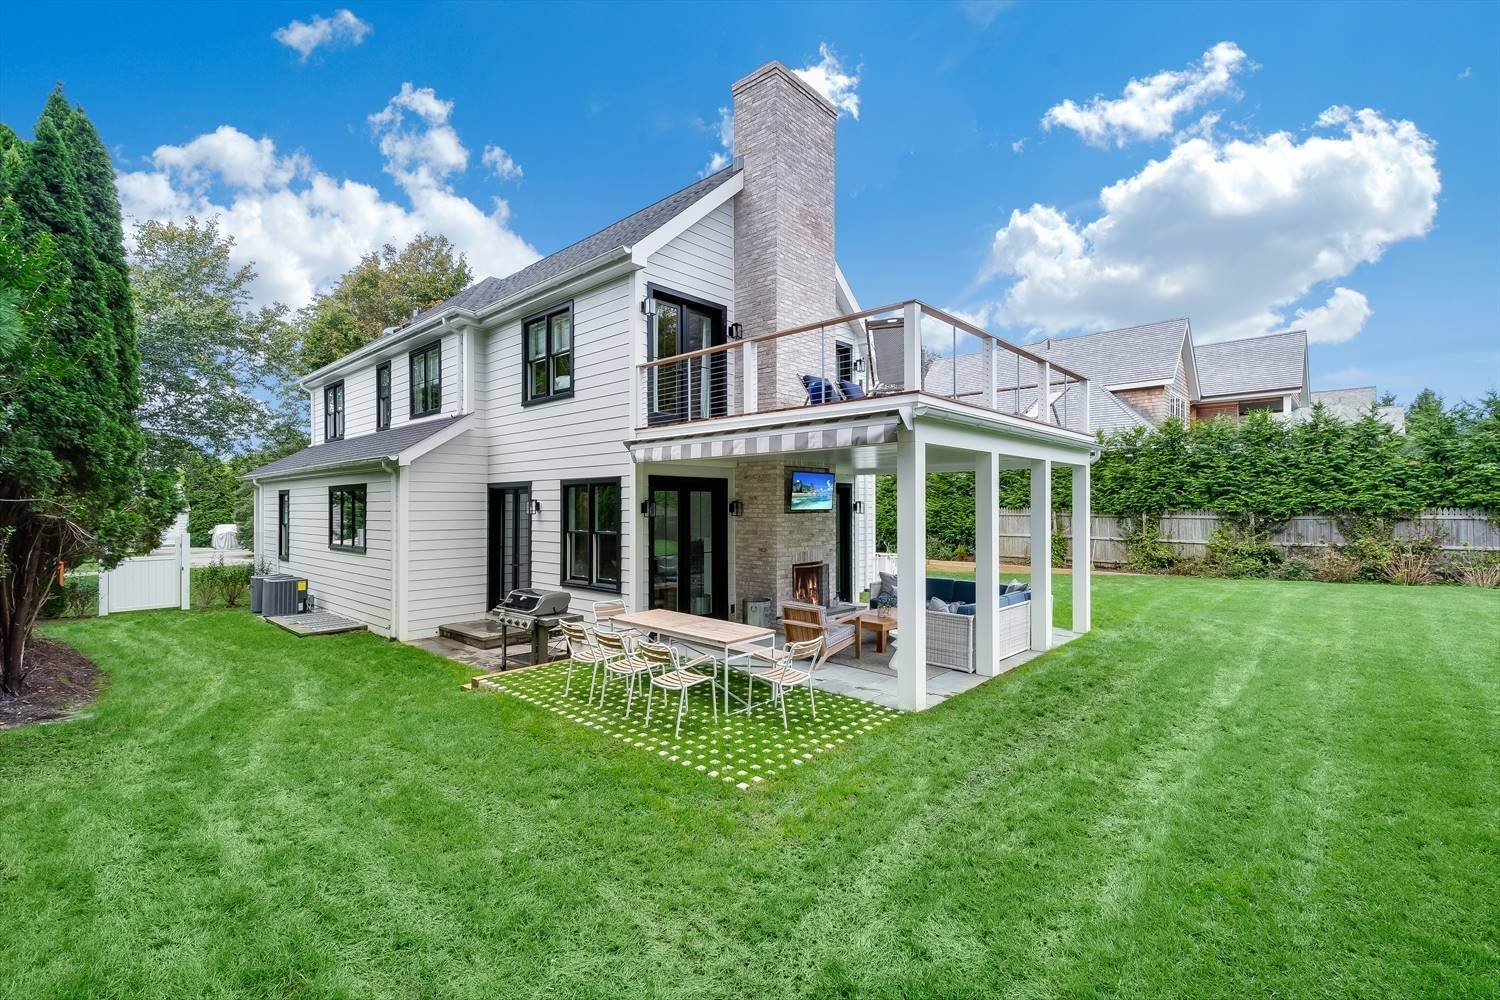 3. Single Family Home at Quintessential Hamptons Summer In Amagansett South 43 Hedges Lane, Amagansett, NY 11930